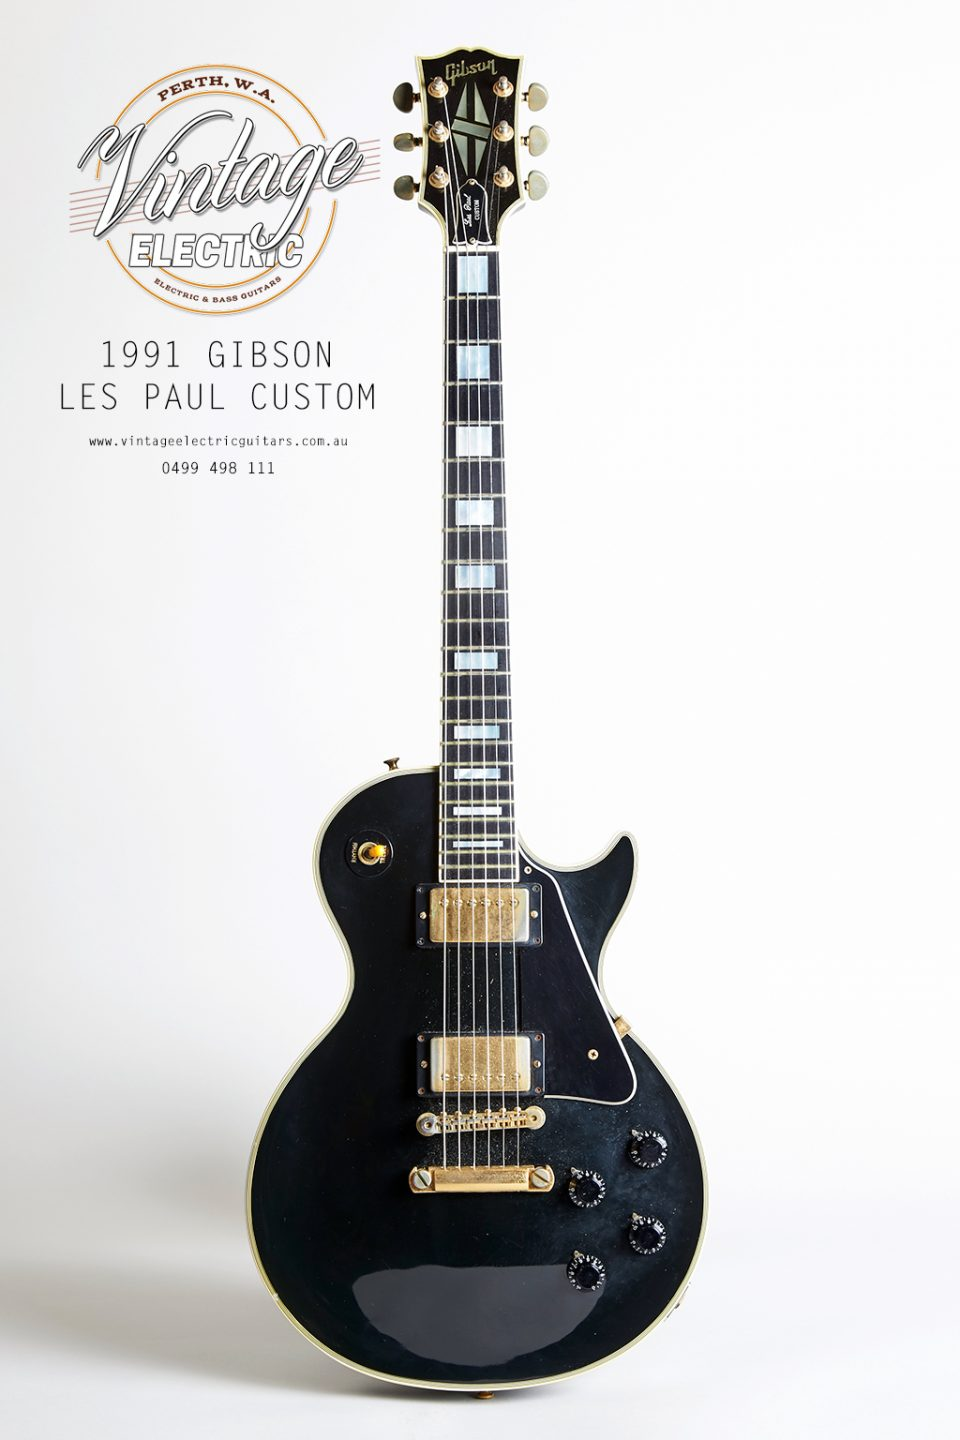 1991 Les Paul Custom Black Beauty